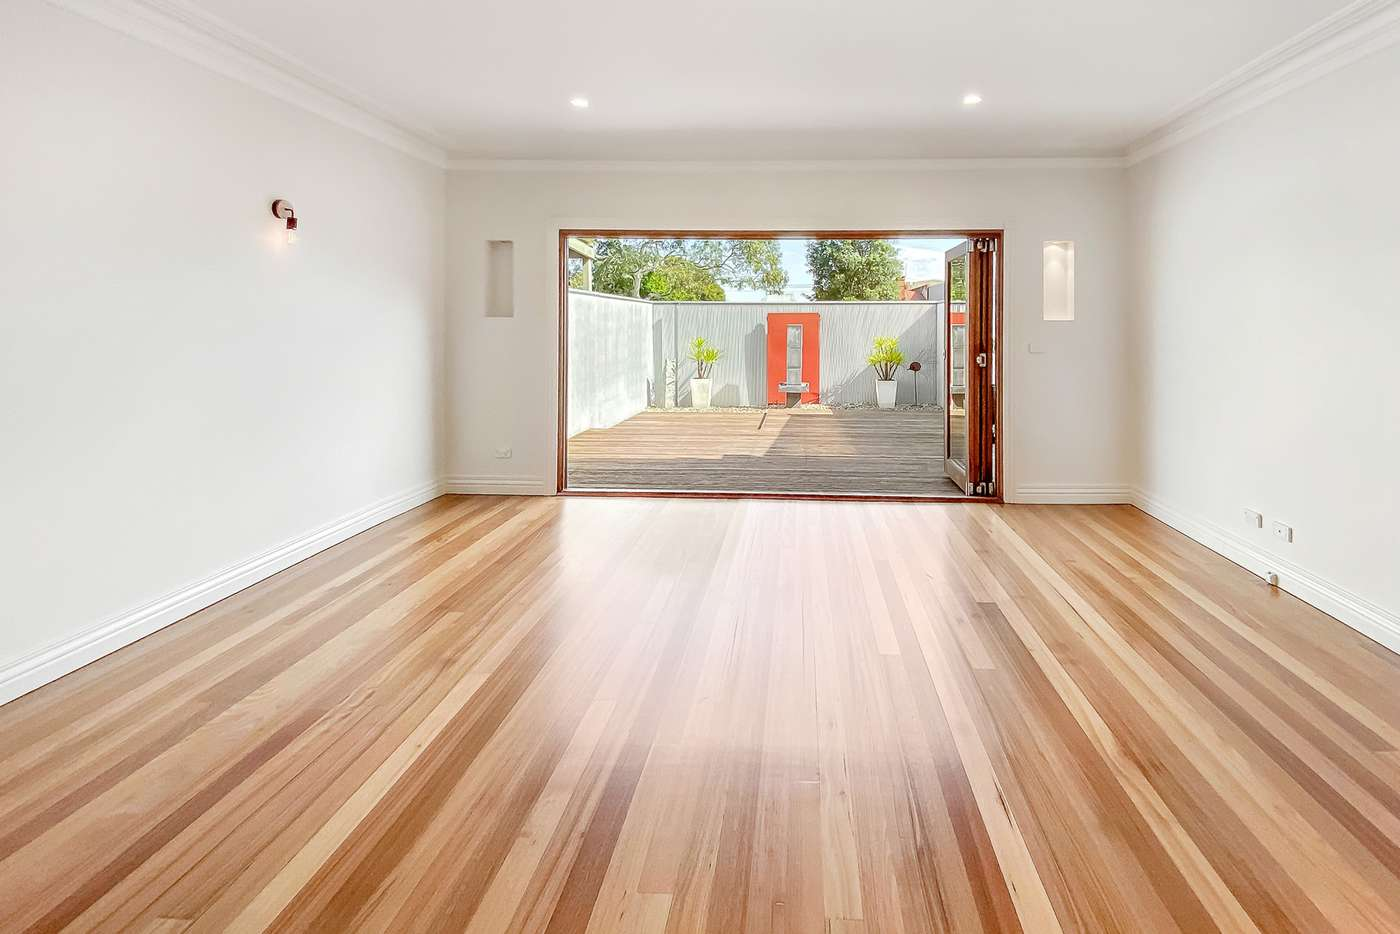 Sixth view of Homely house listing, 81 Leicester Street, Preston VIC 3072